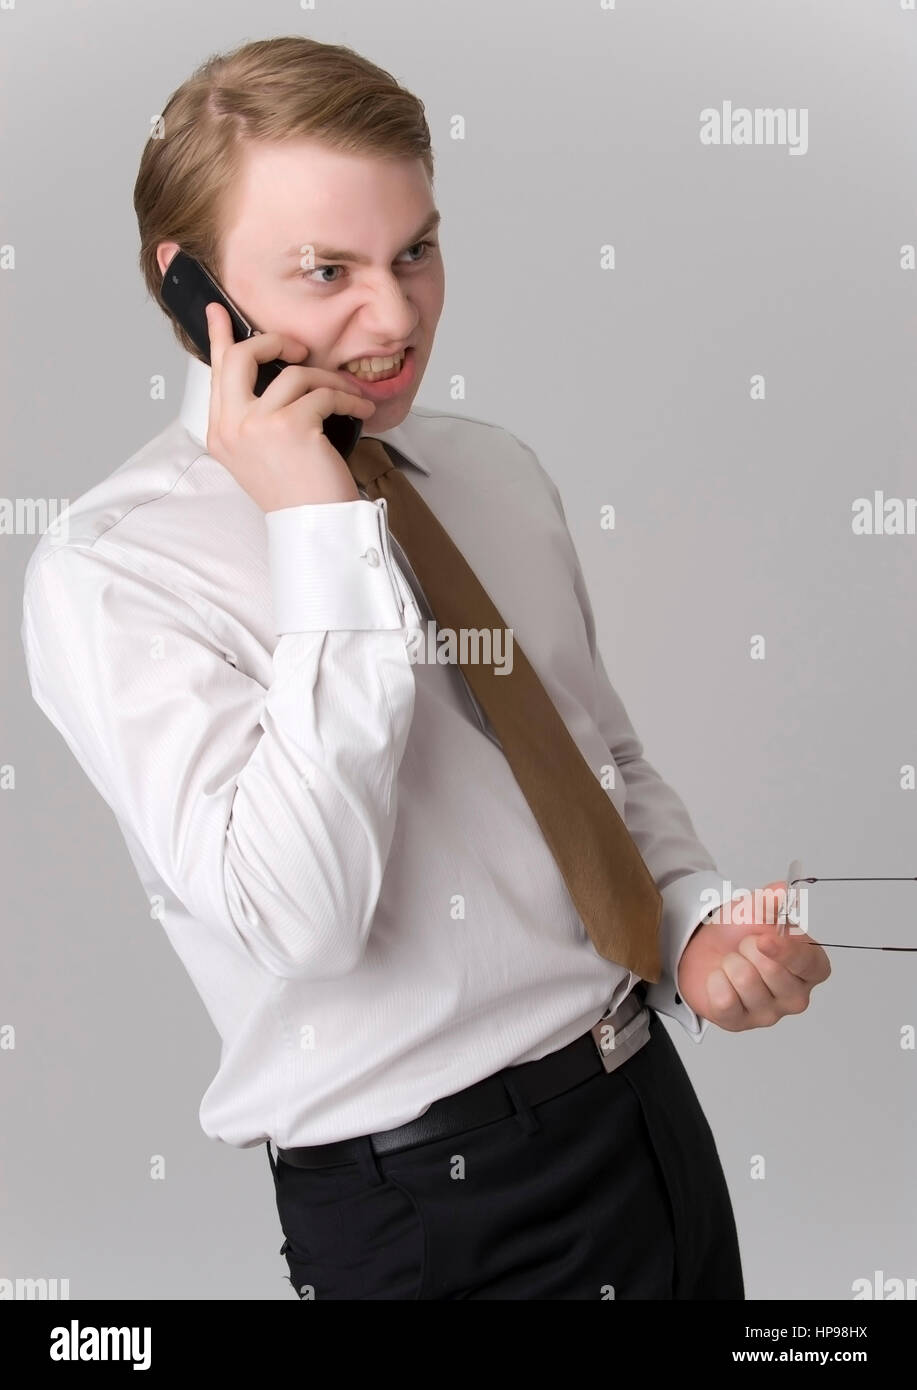 Model released , Zorniger, junger Gesch?ftsmann mit Handy - young businessman with mobile phone Stock Photo